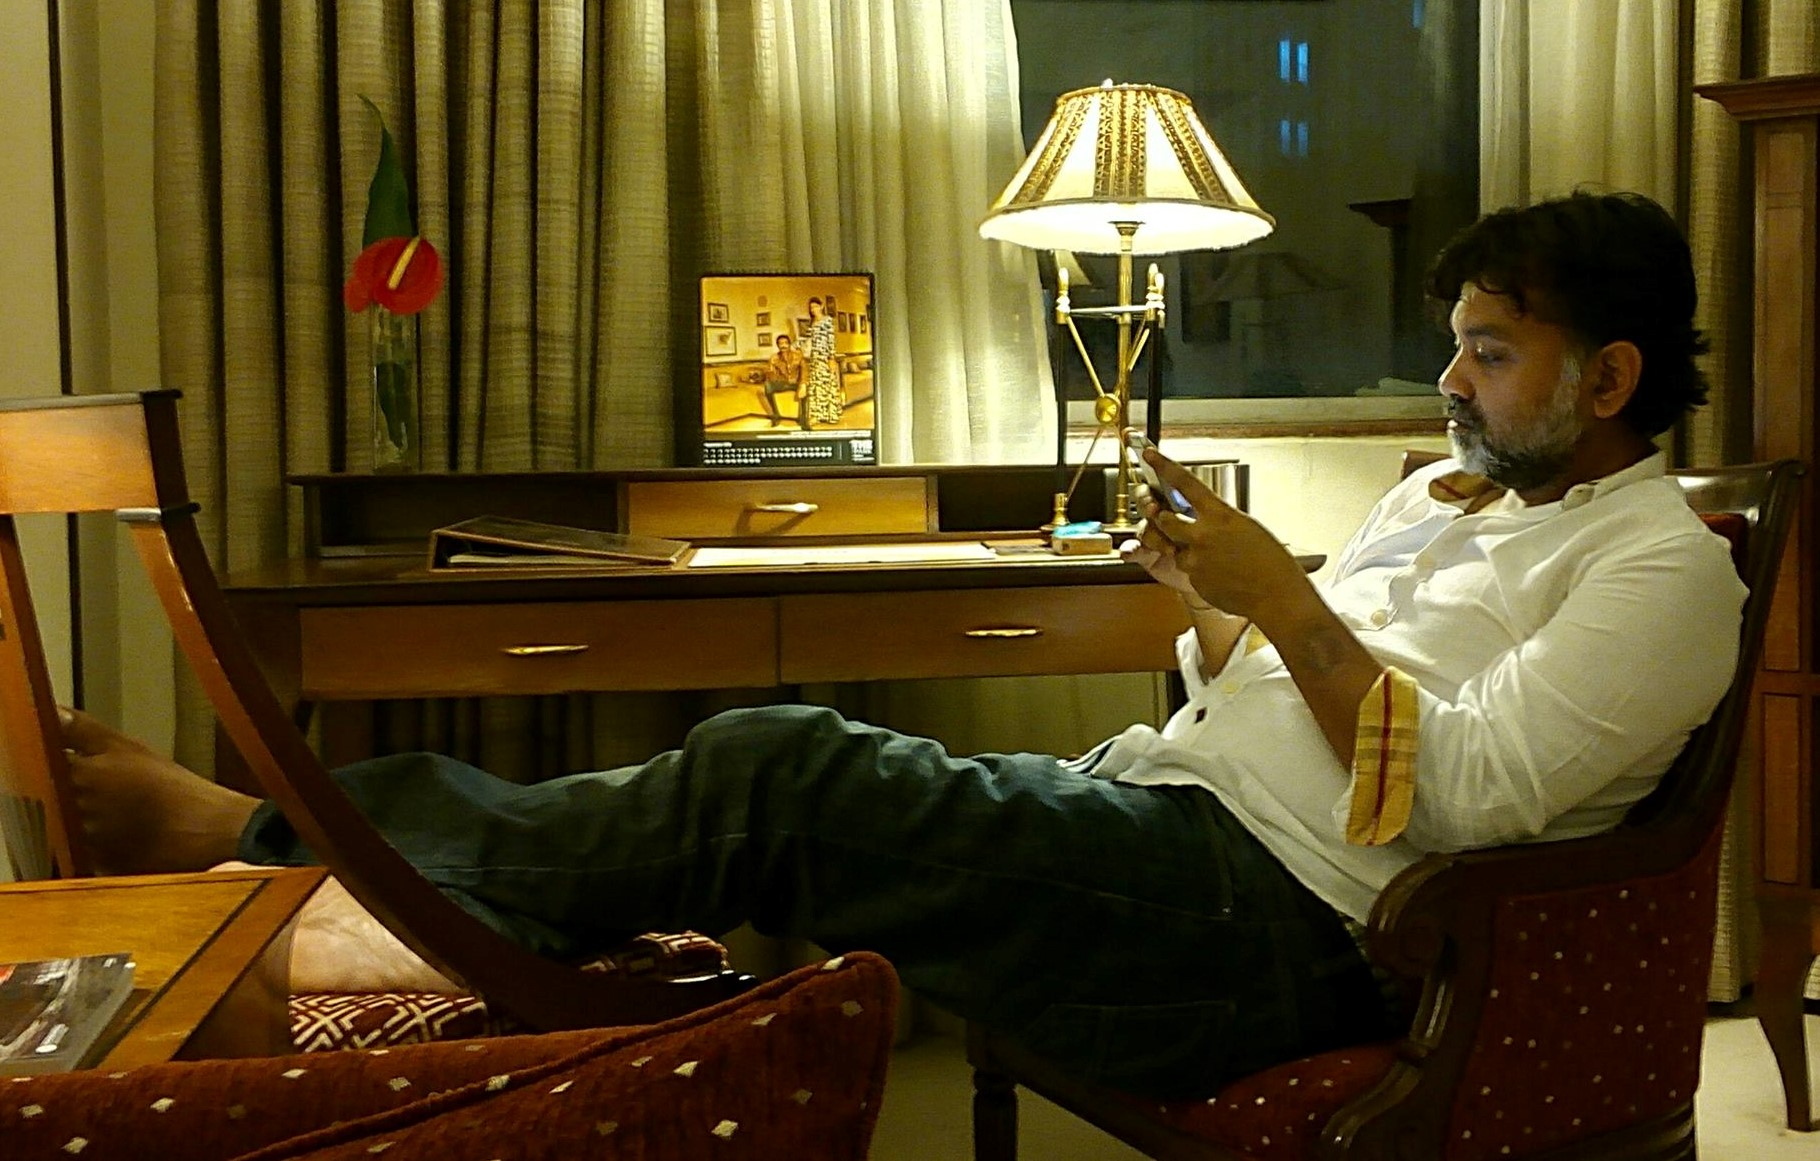 srijit with mobile